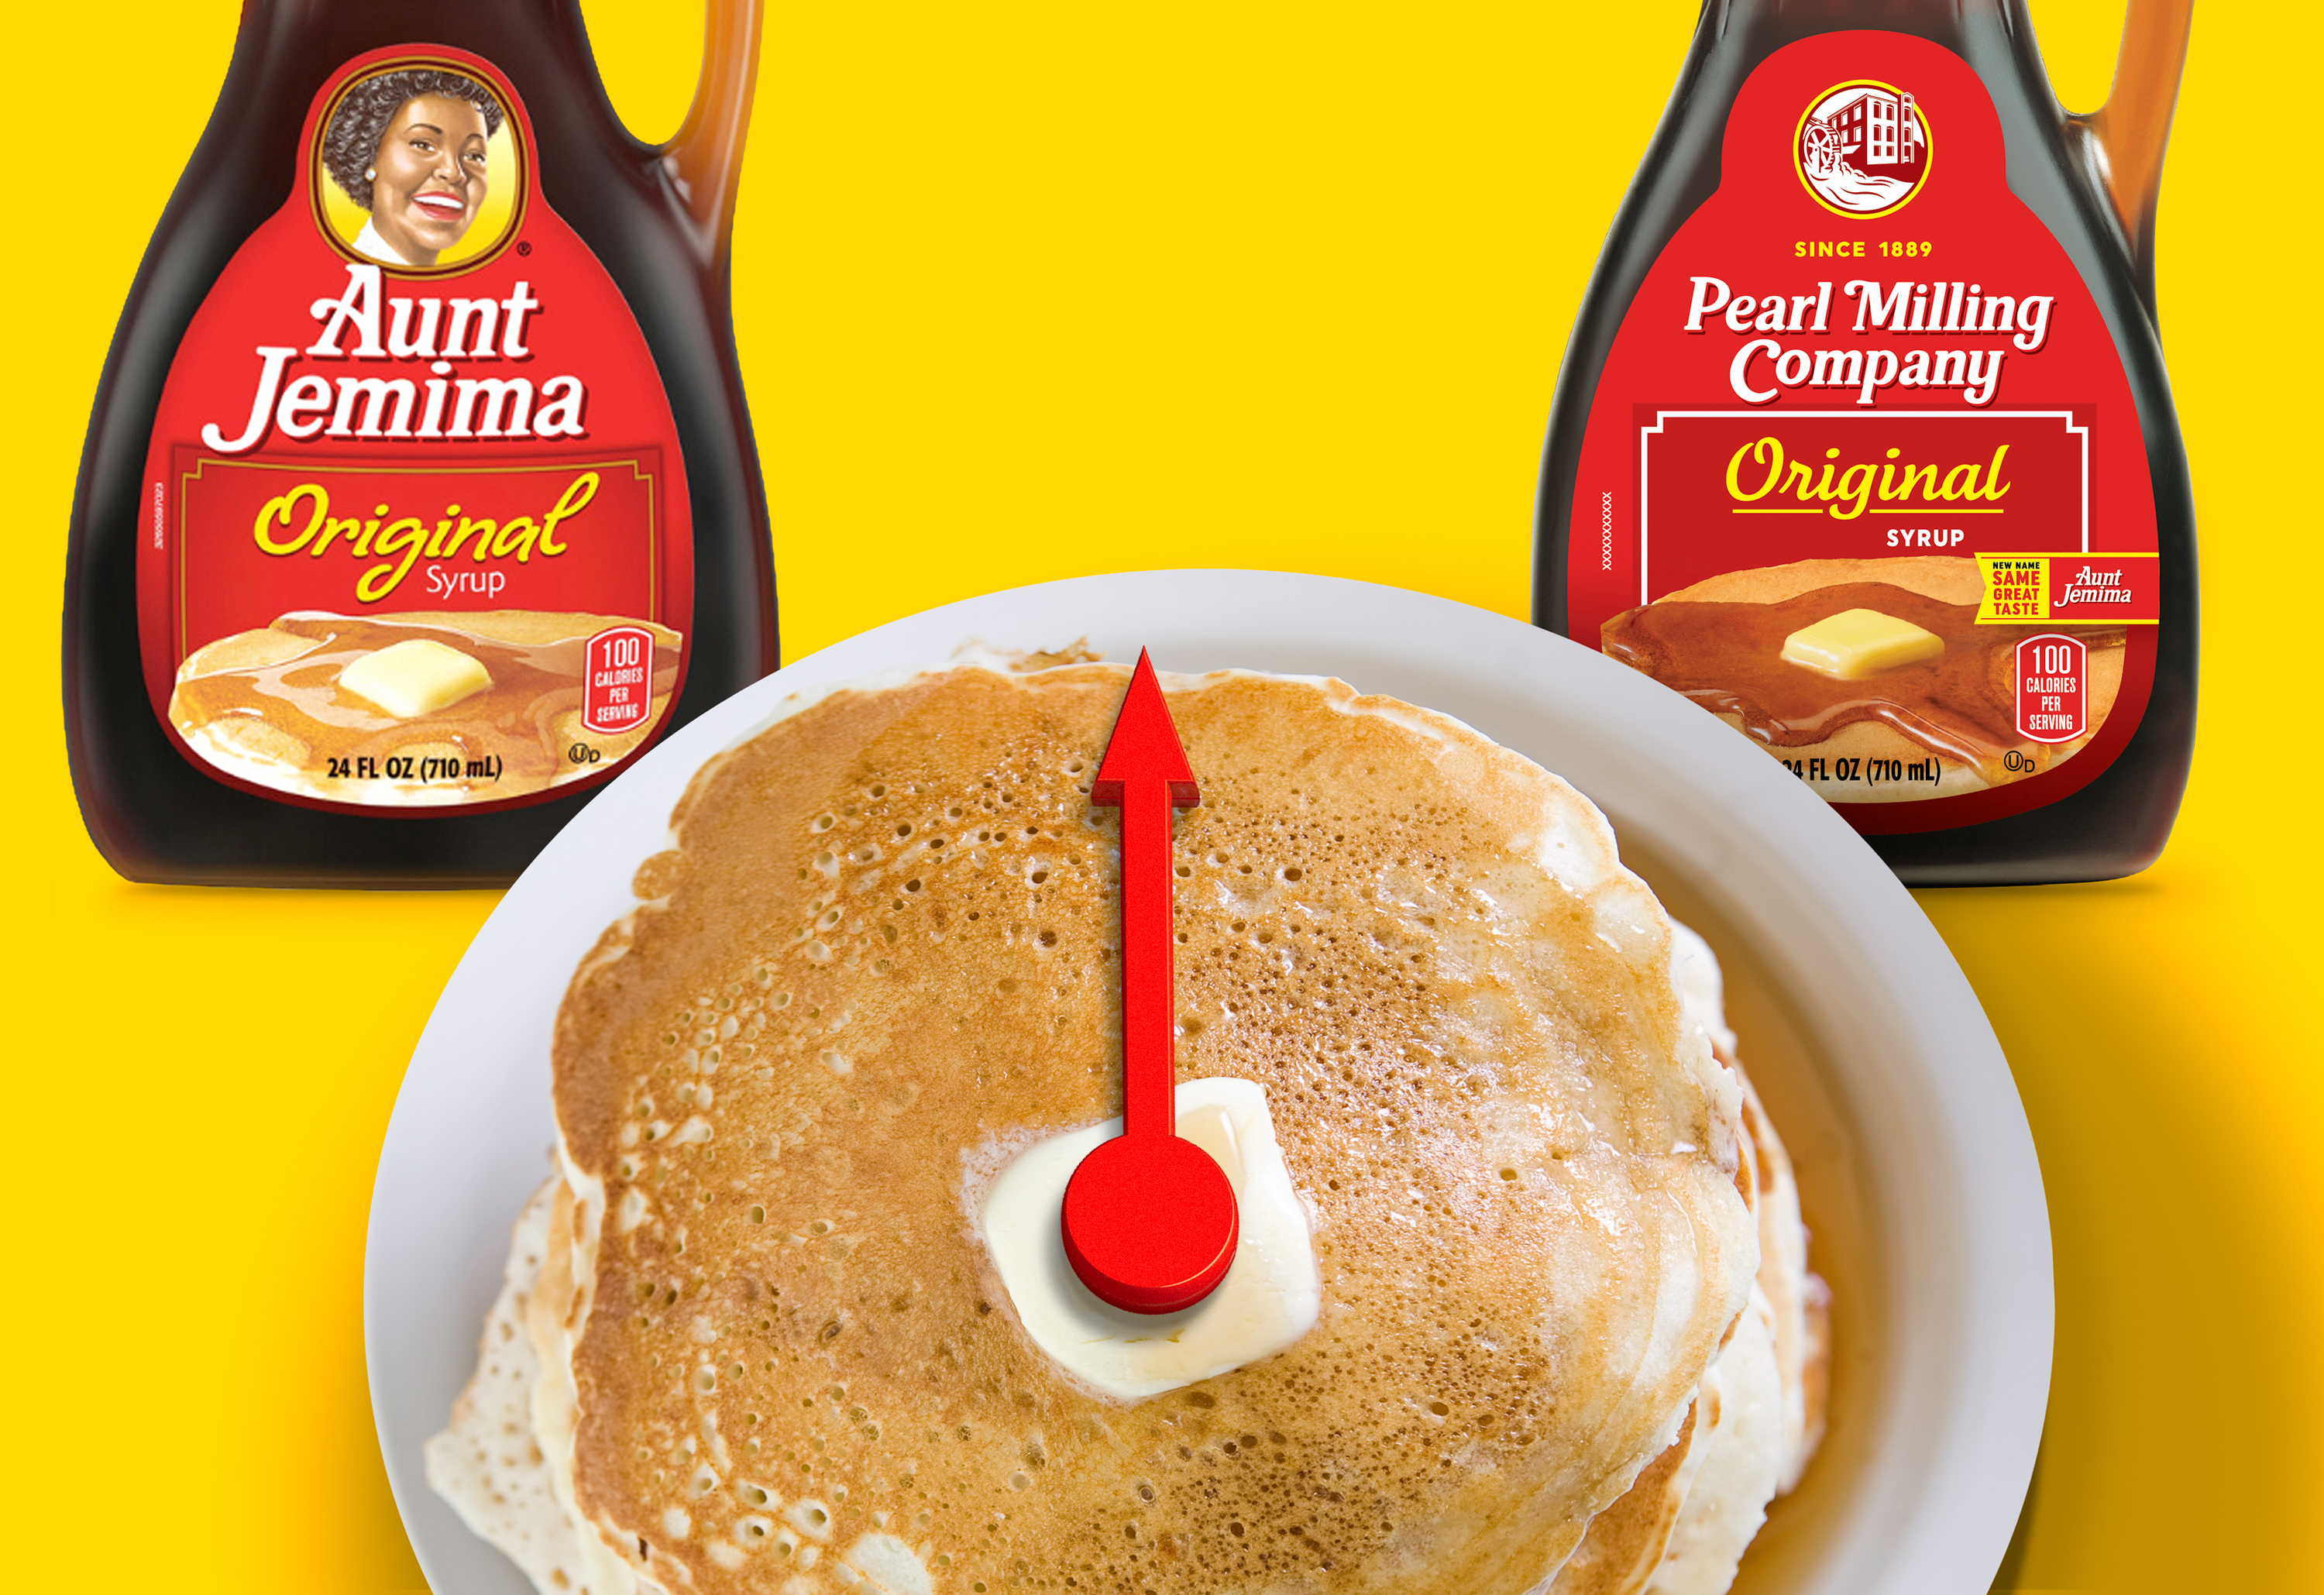 Aunt Jemima's name change gains wide awareness but questionable impact on sales, according to new poll